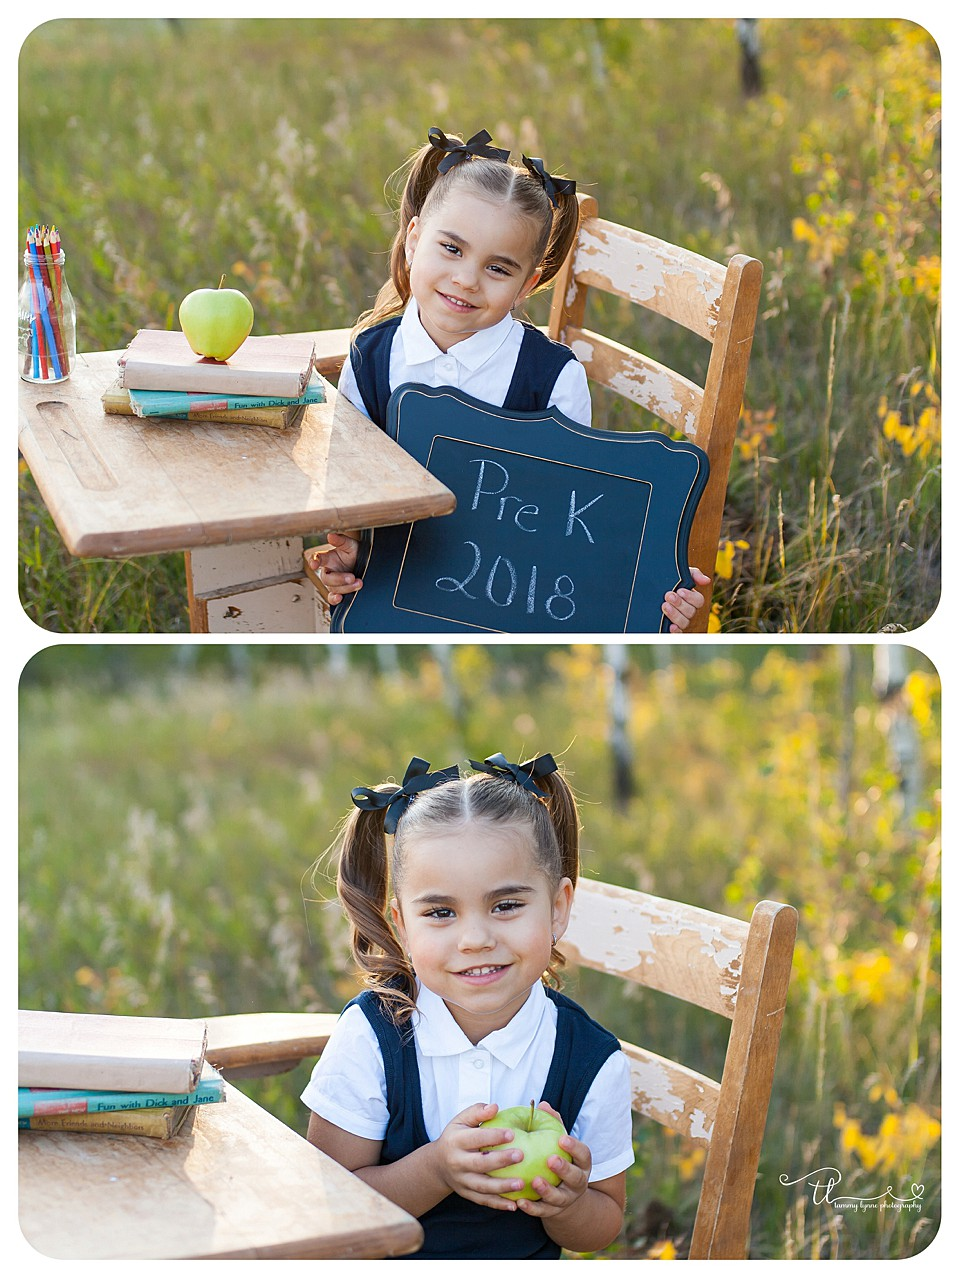 preschooler holding a sign for first day of school pictures